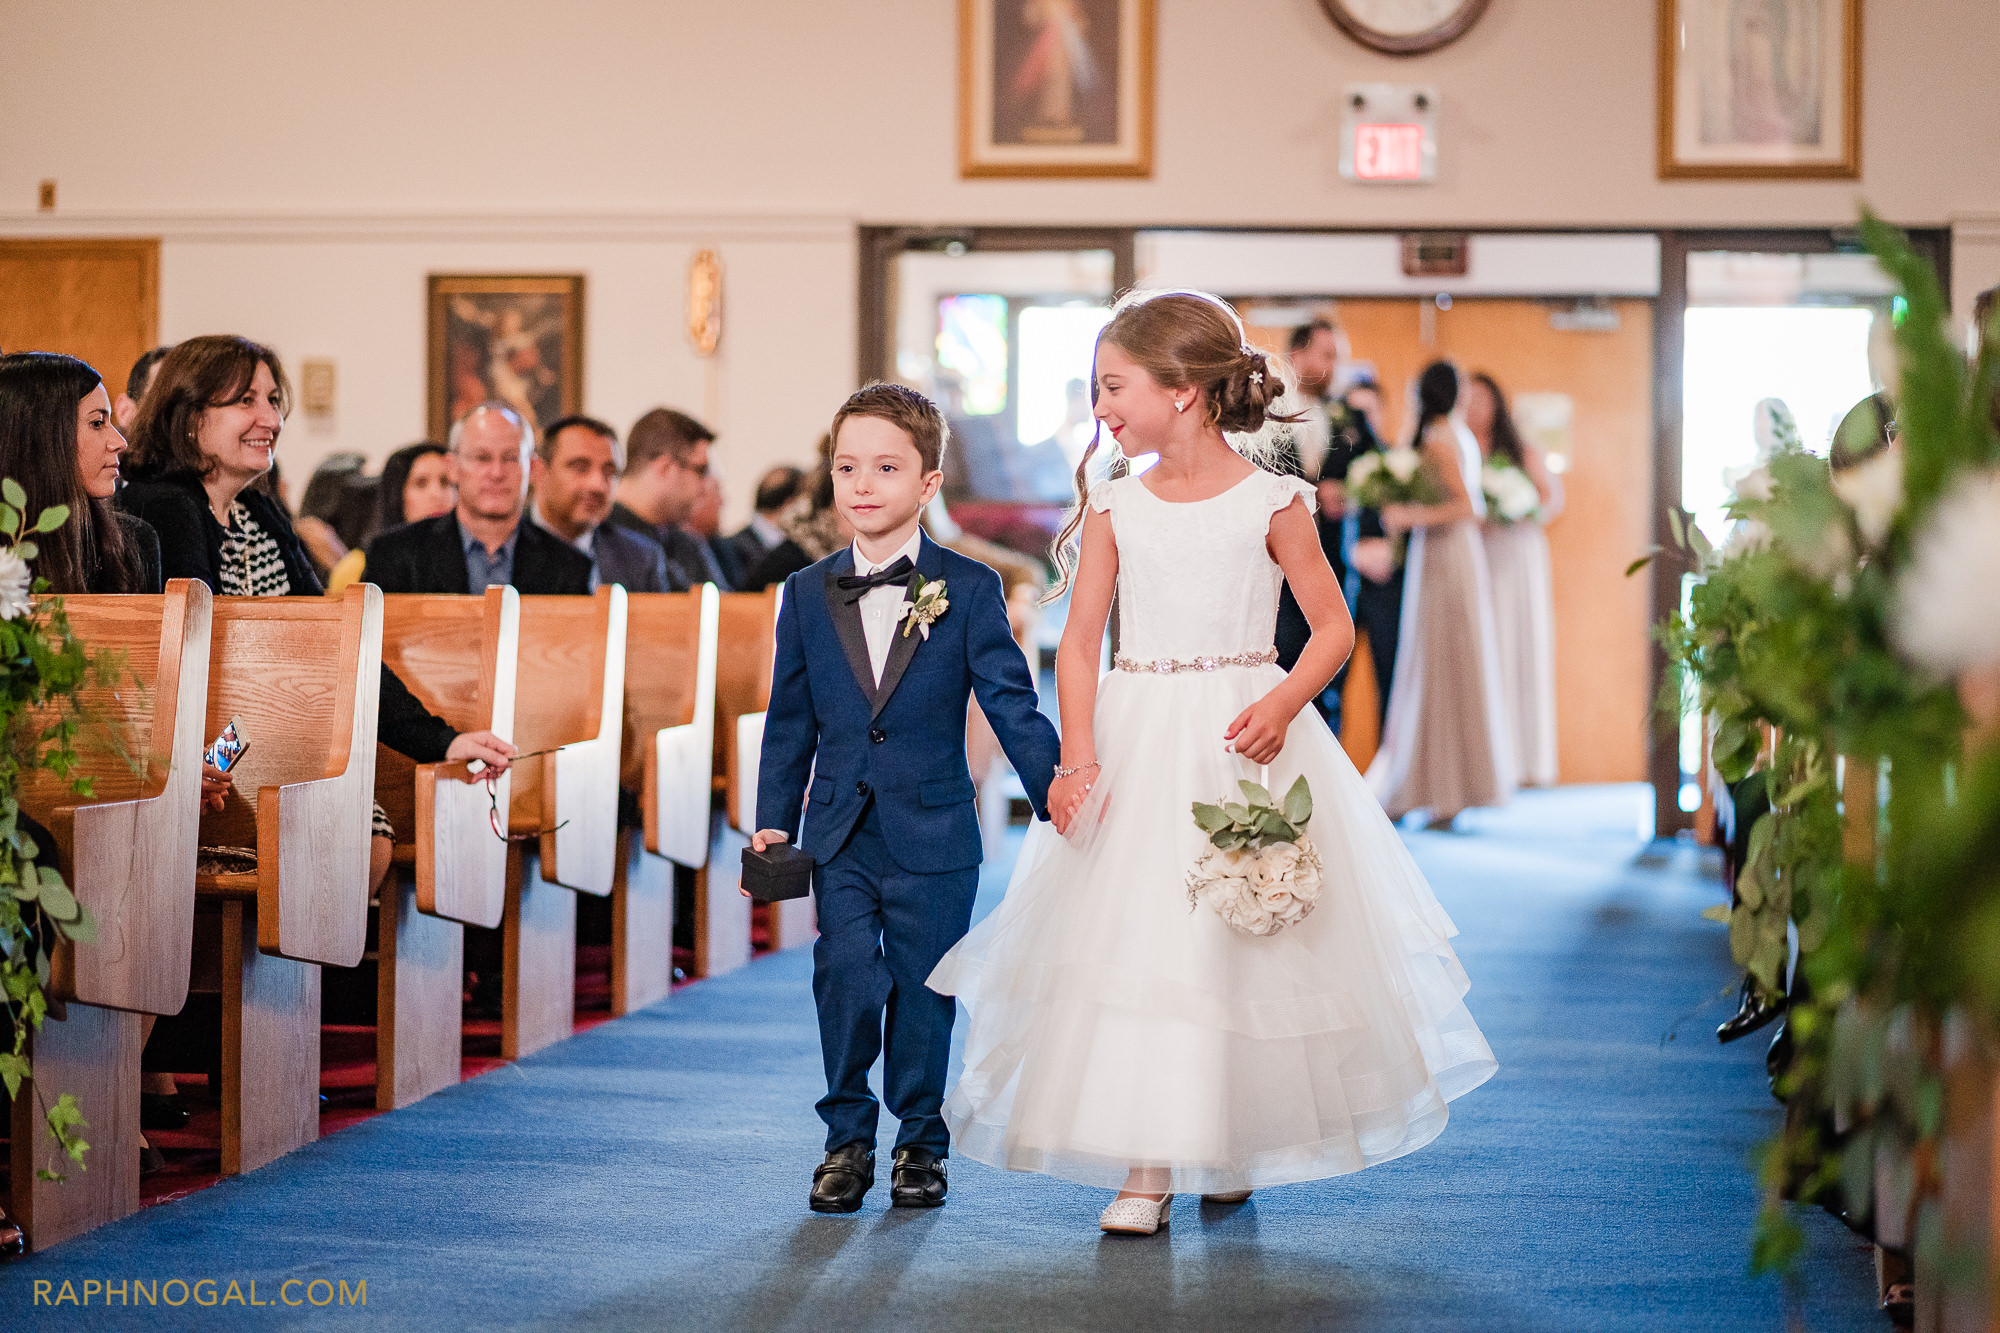 Ringboy and flowergirl walking down the isle